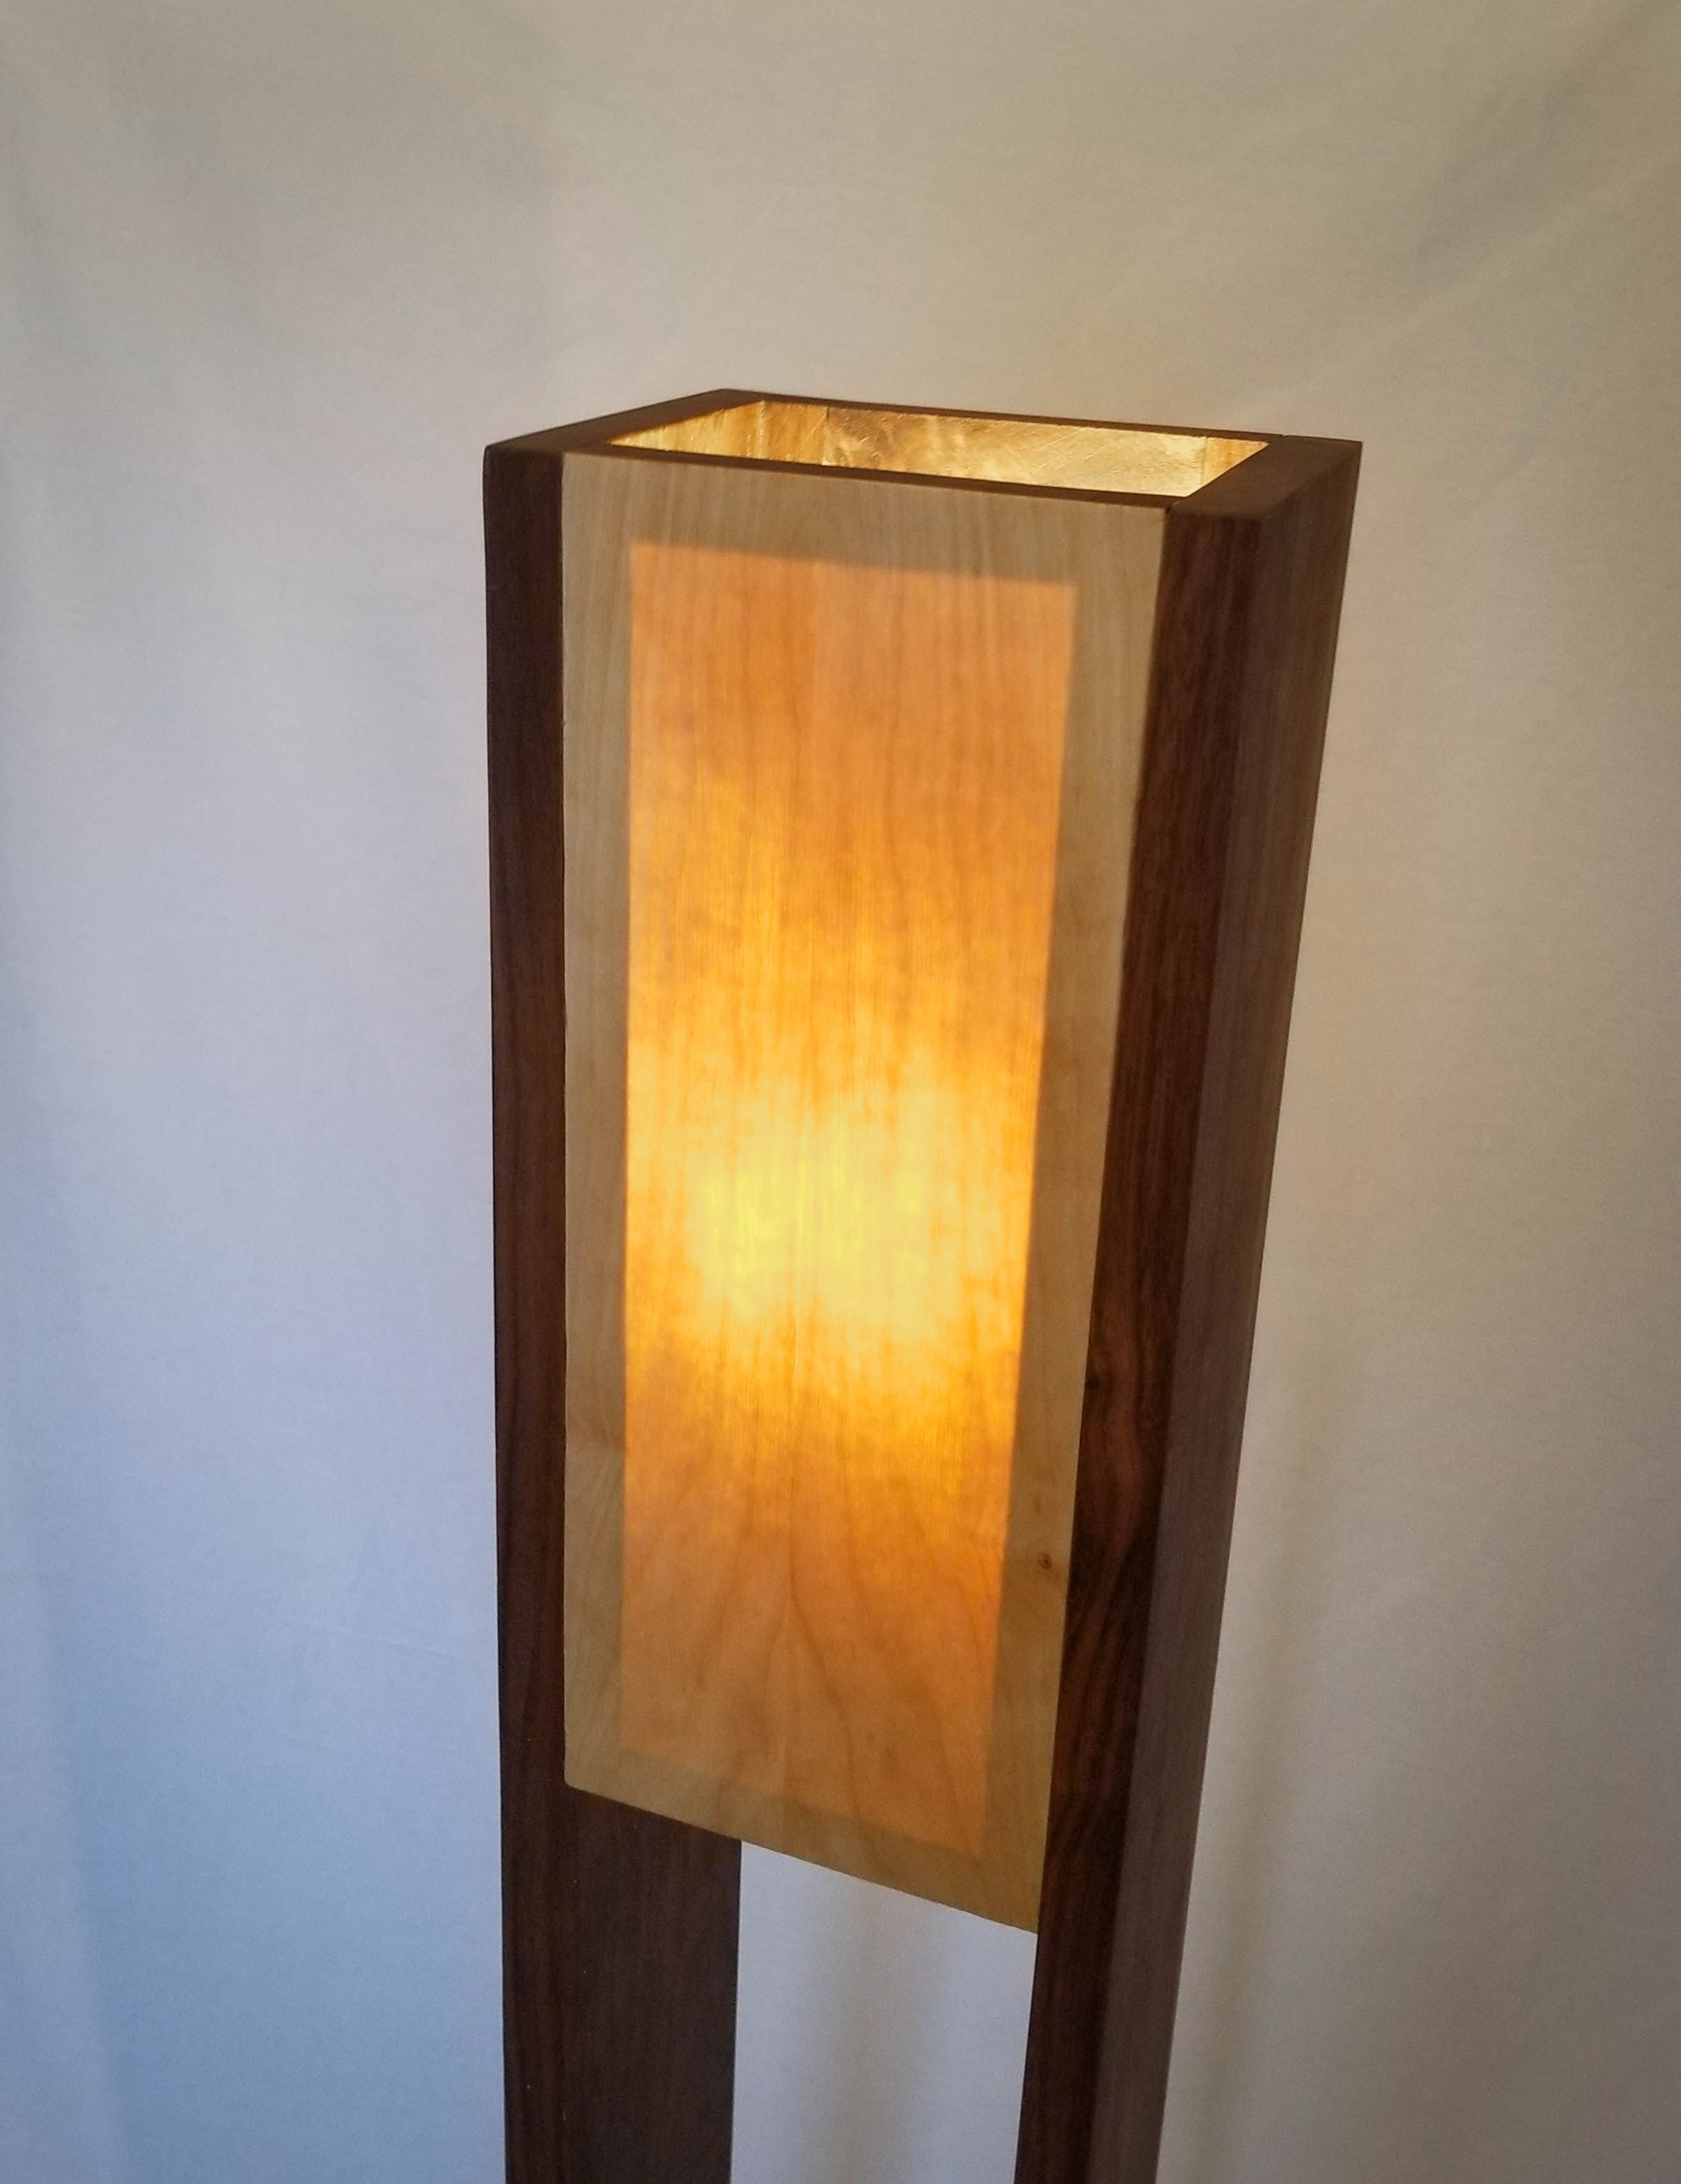 Lampadaire Exterieur Fait Maison Walnut Wood Floor Lamp With Concrete Base Free Shipping Canada